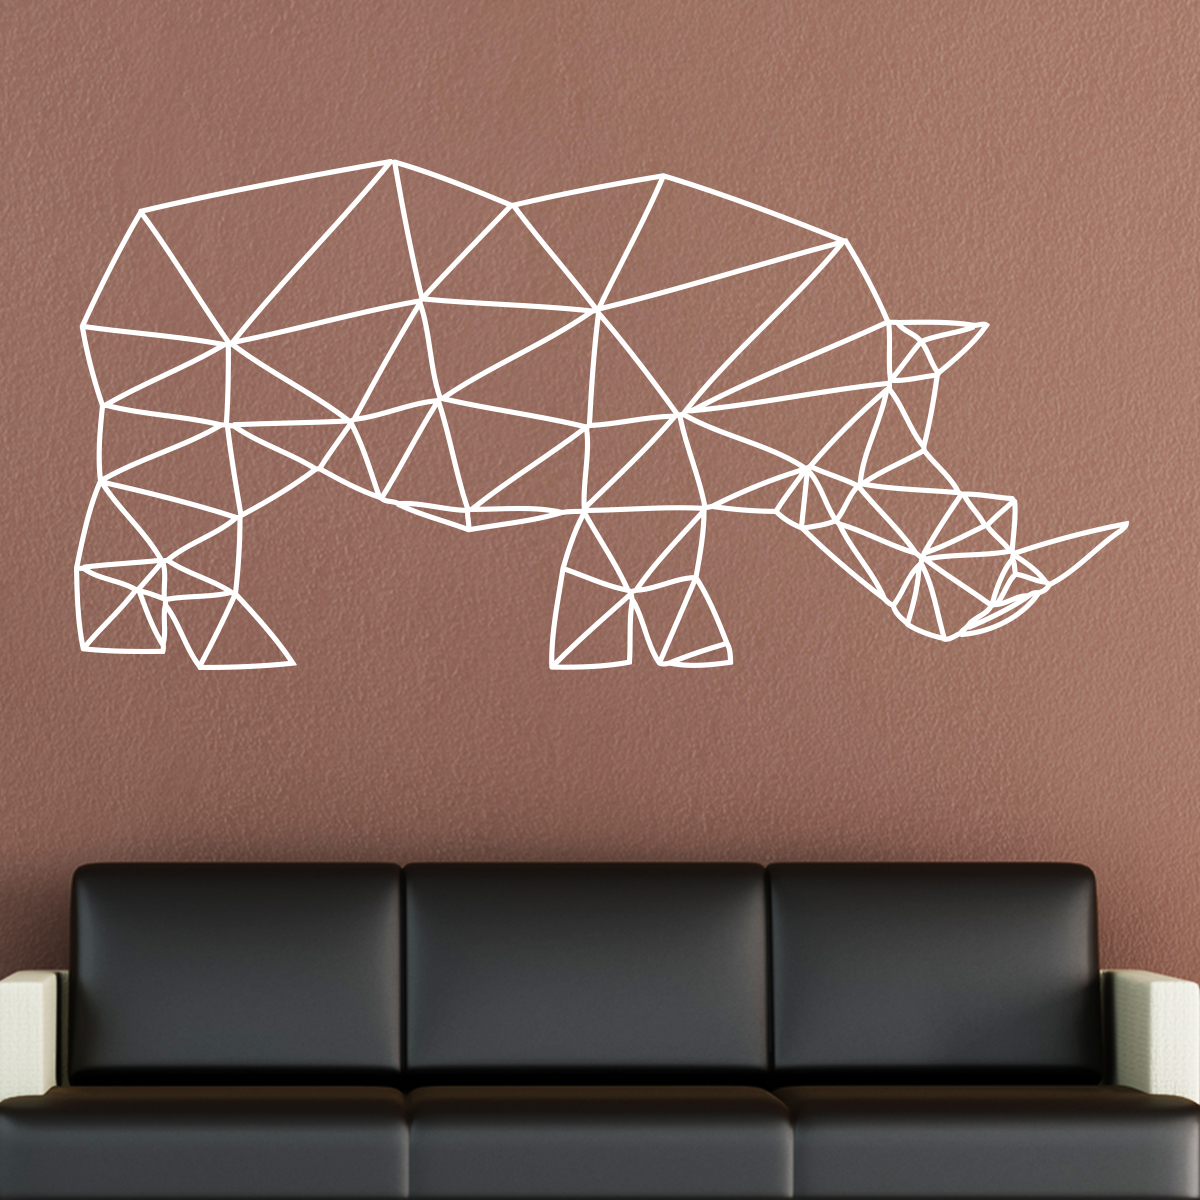 sticker origami rhinoc ros stickers animaux animaux d 39 afrique ambiance sticker. Black Bedroom Furniture Sets. Home Design Ideas